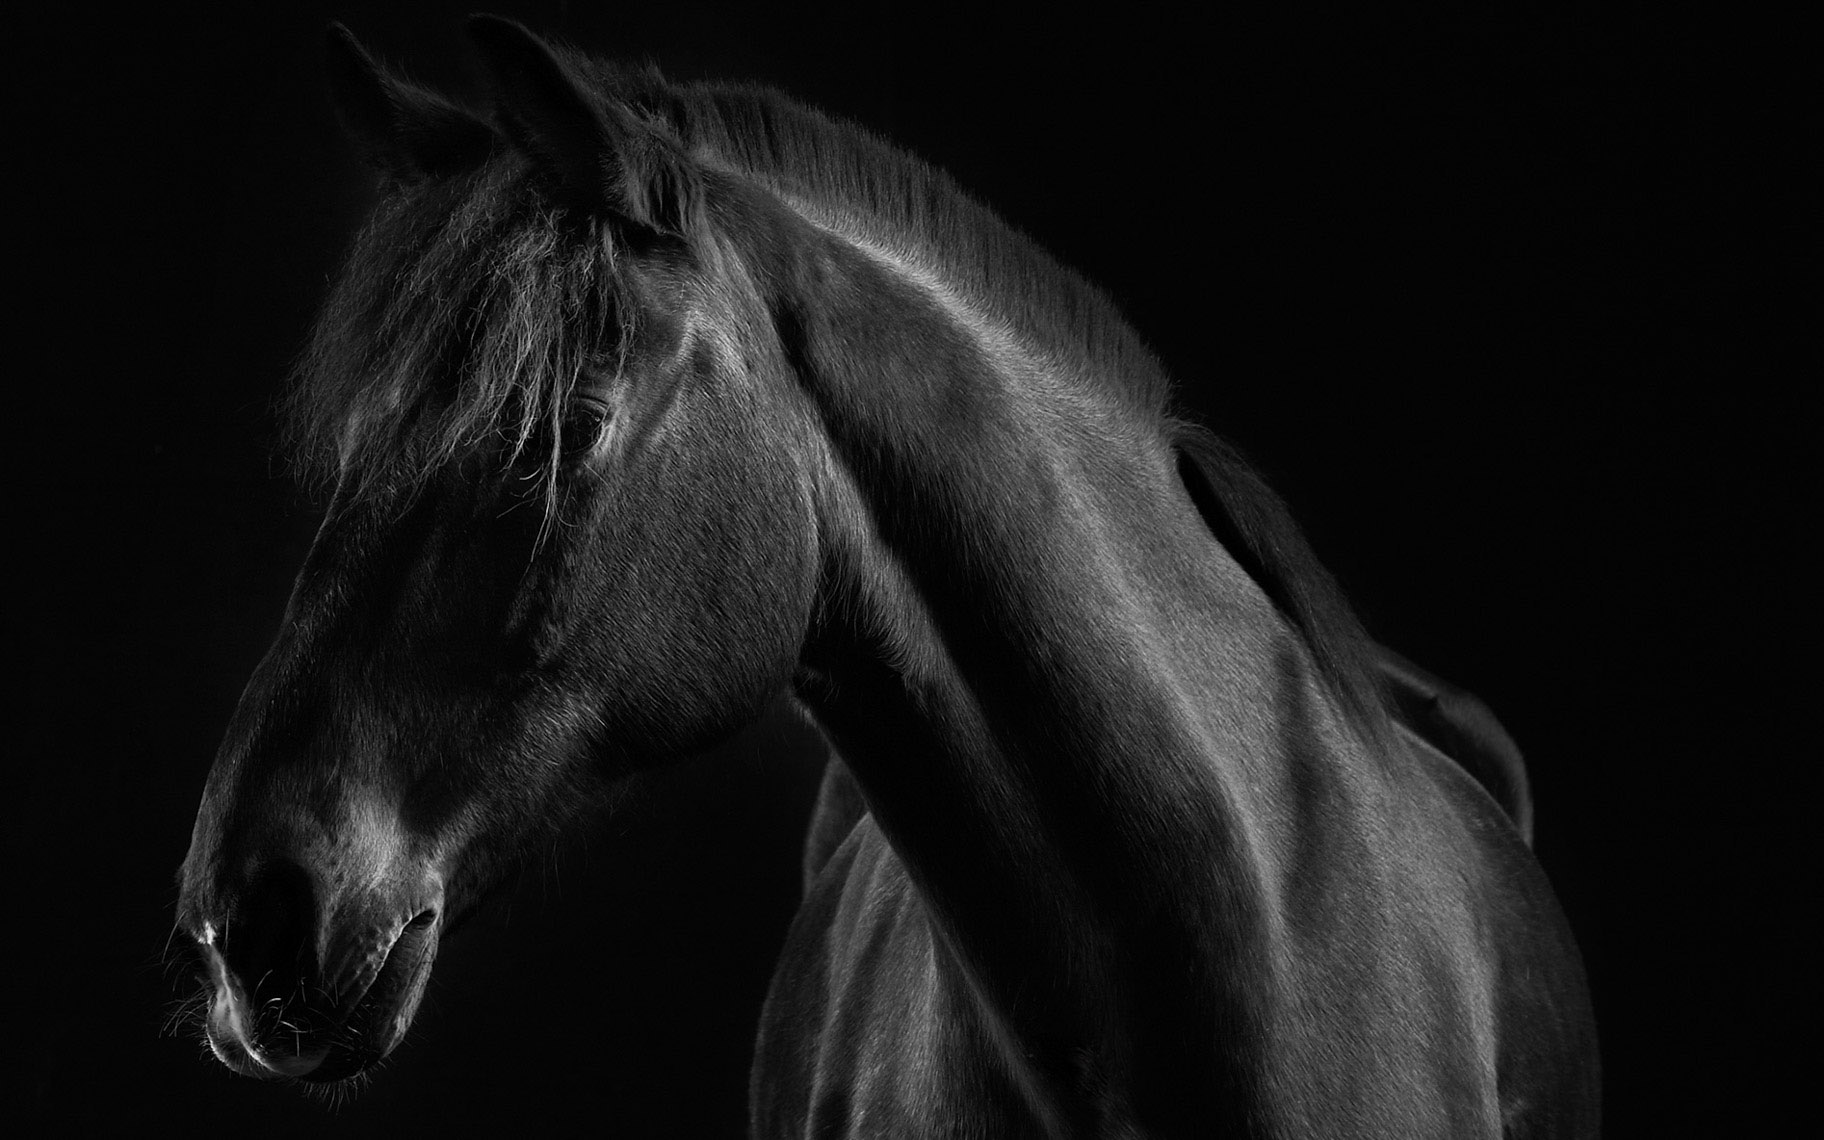 horse.equine.eqestrian.photo.peter.samuels.8